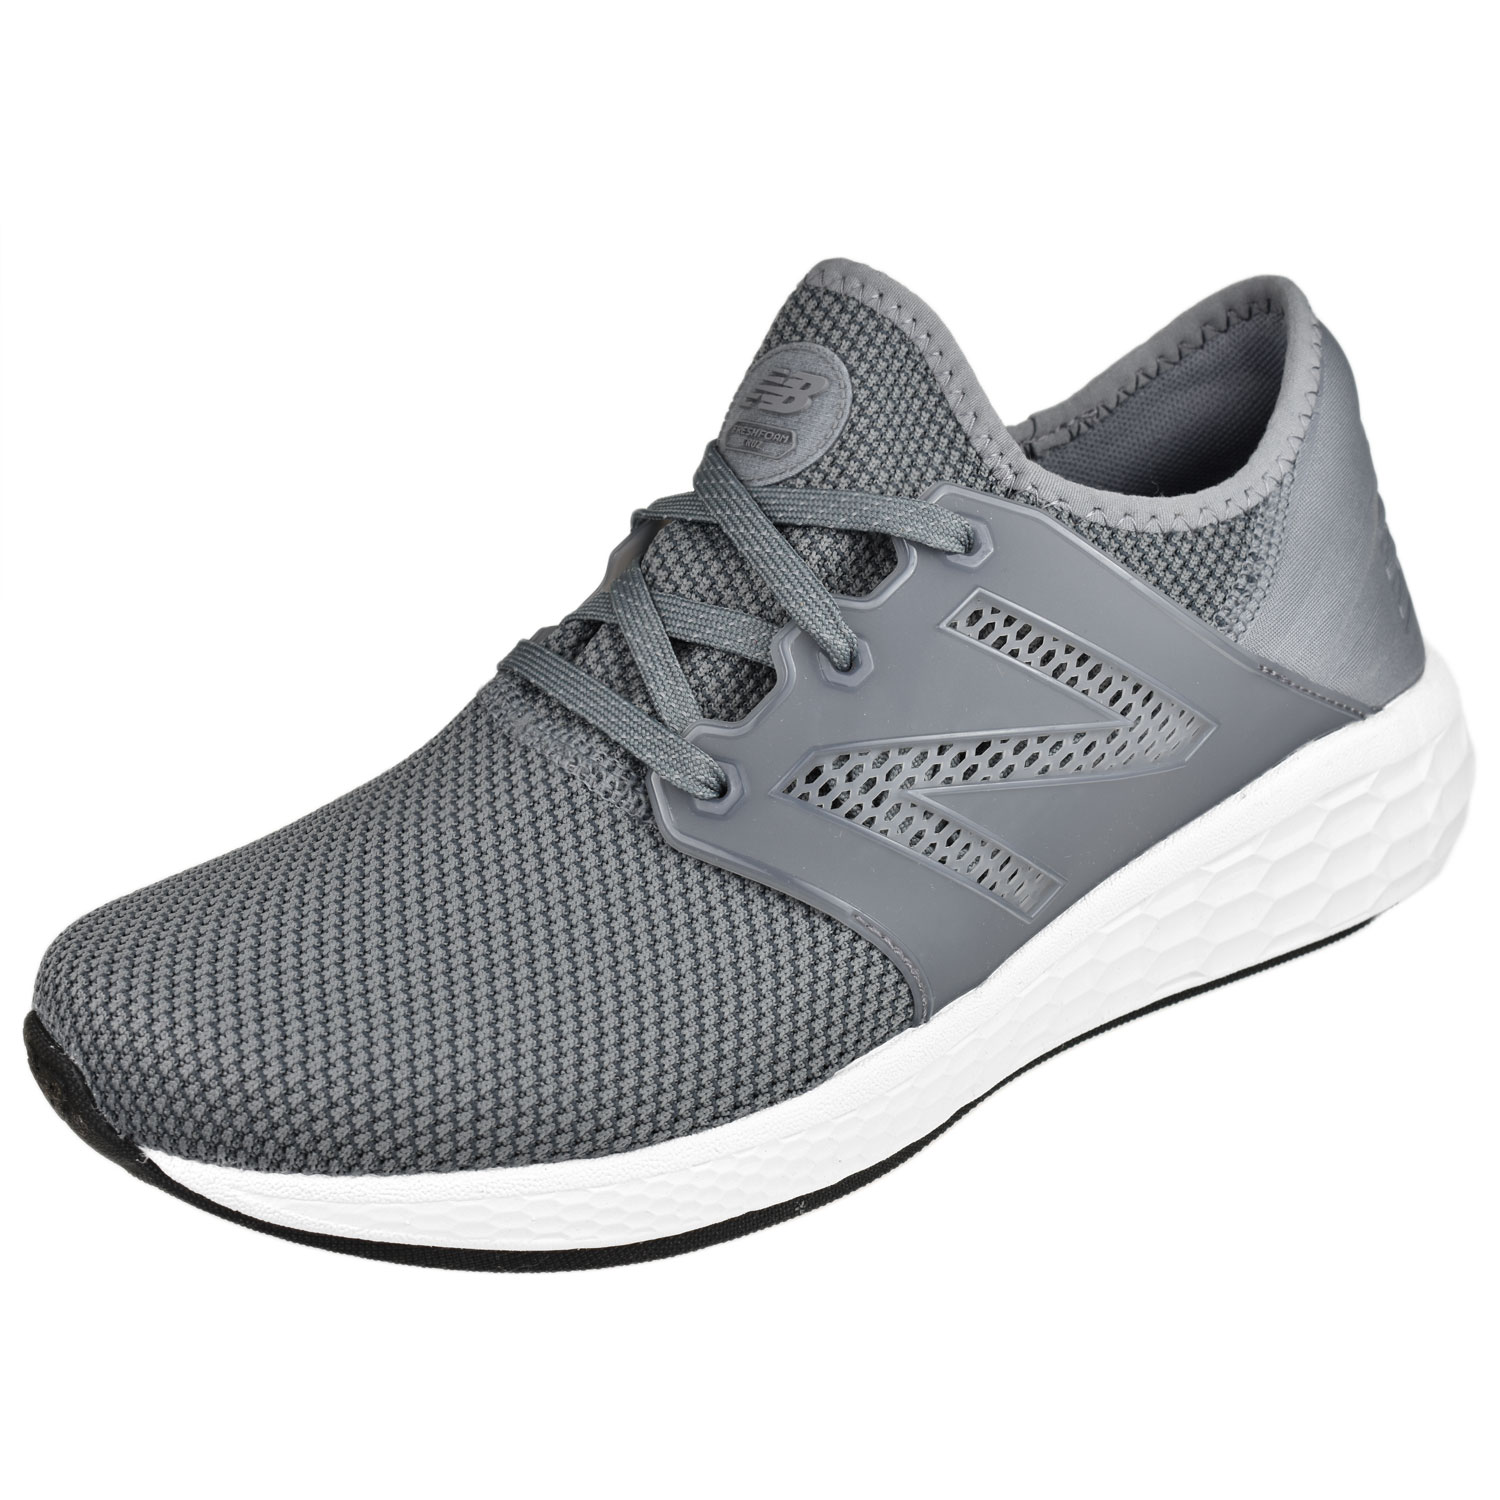 a7c02ce642 New Balance Men s Shoes Fresh Foam Cruz v2 Sport